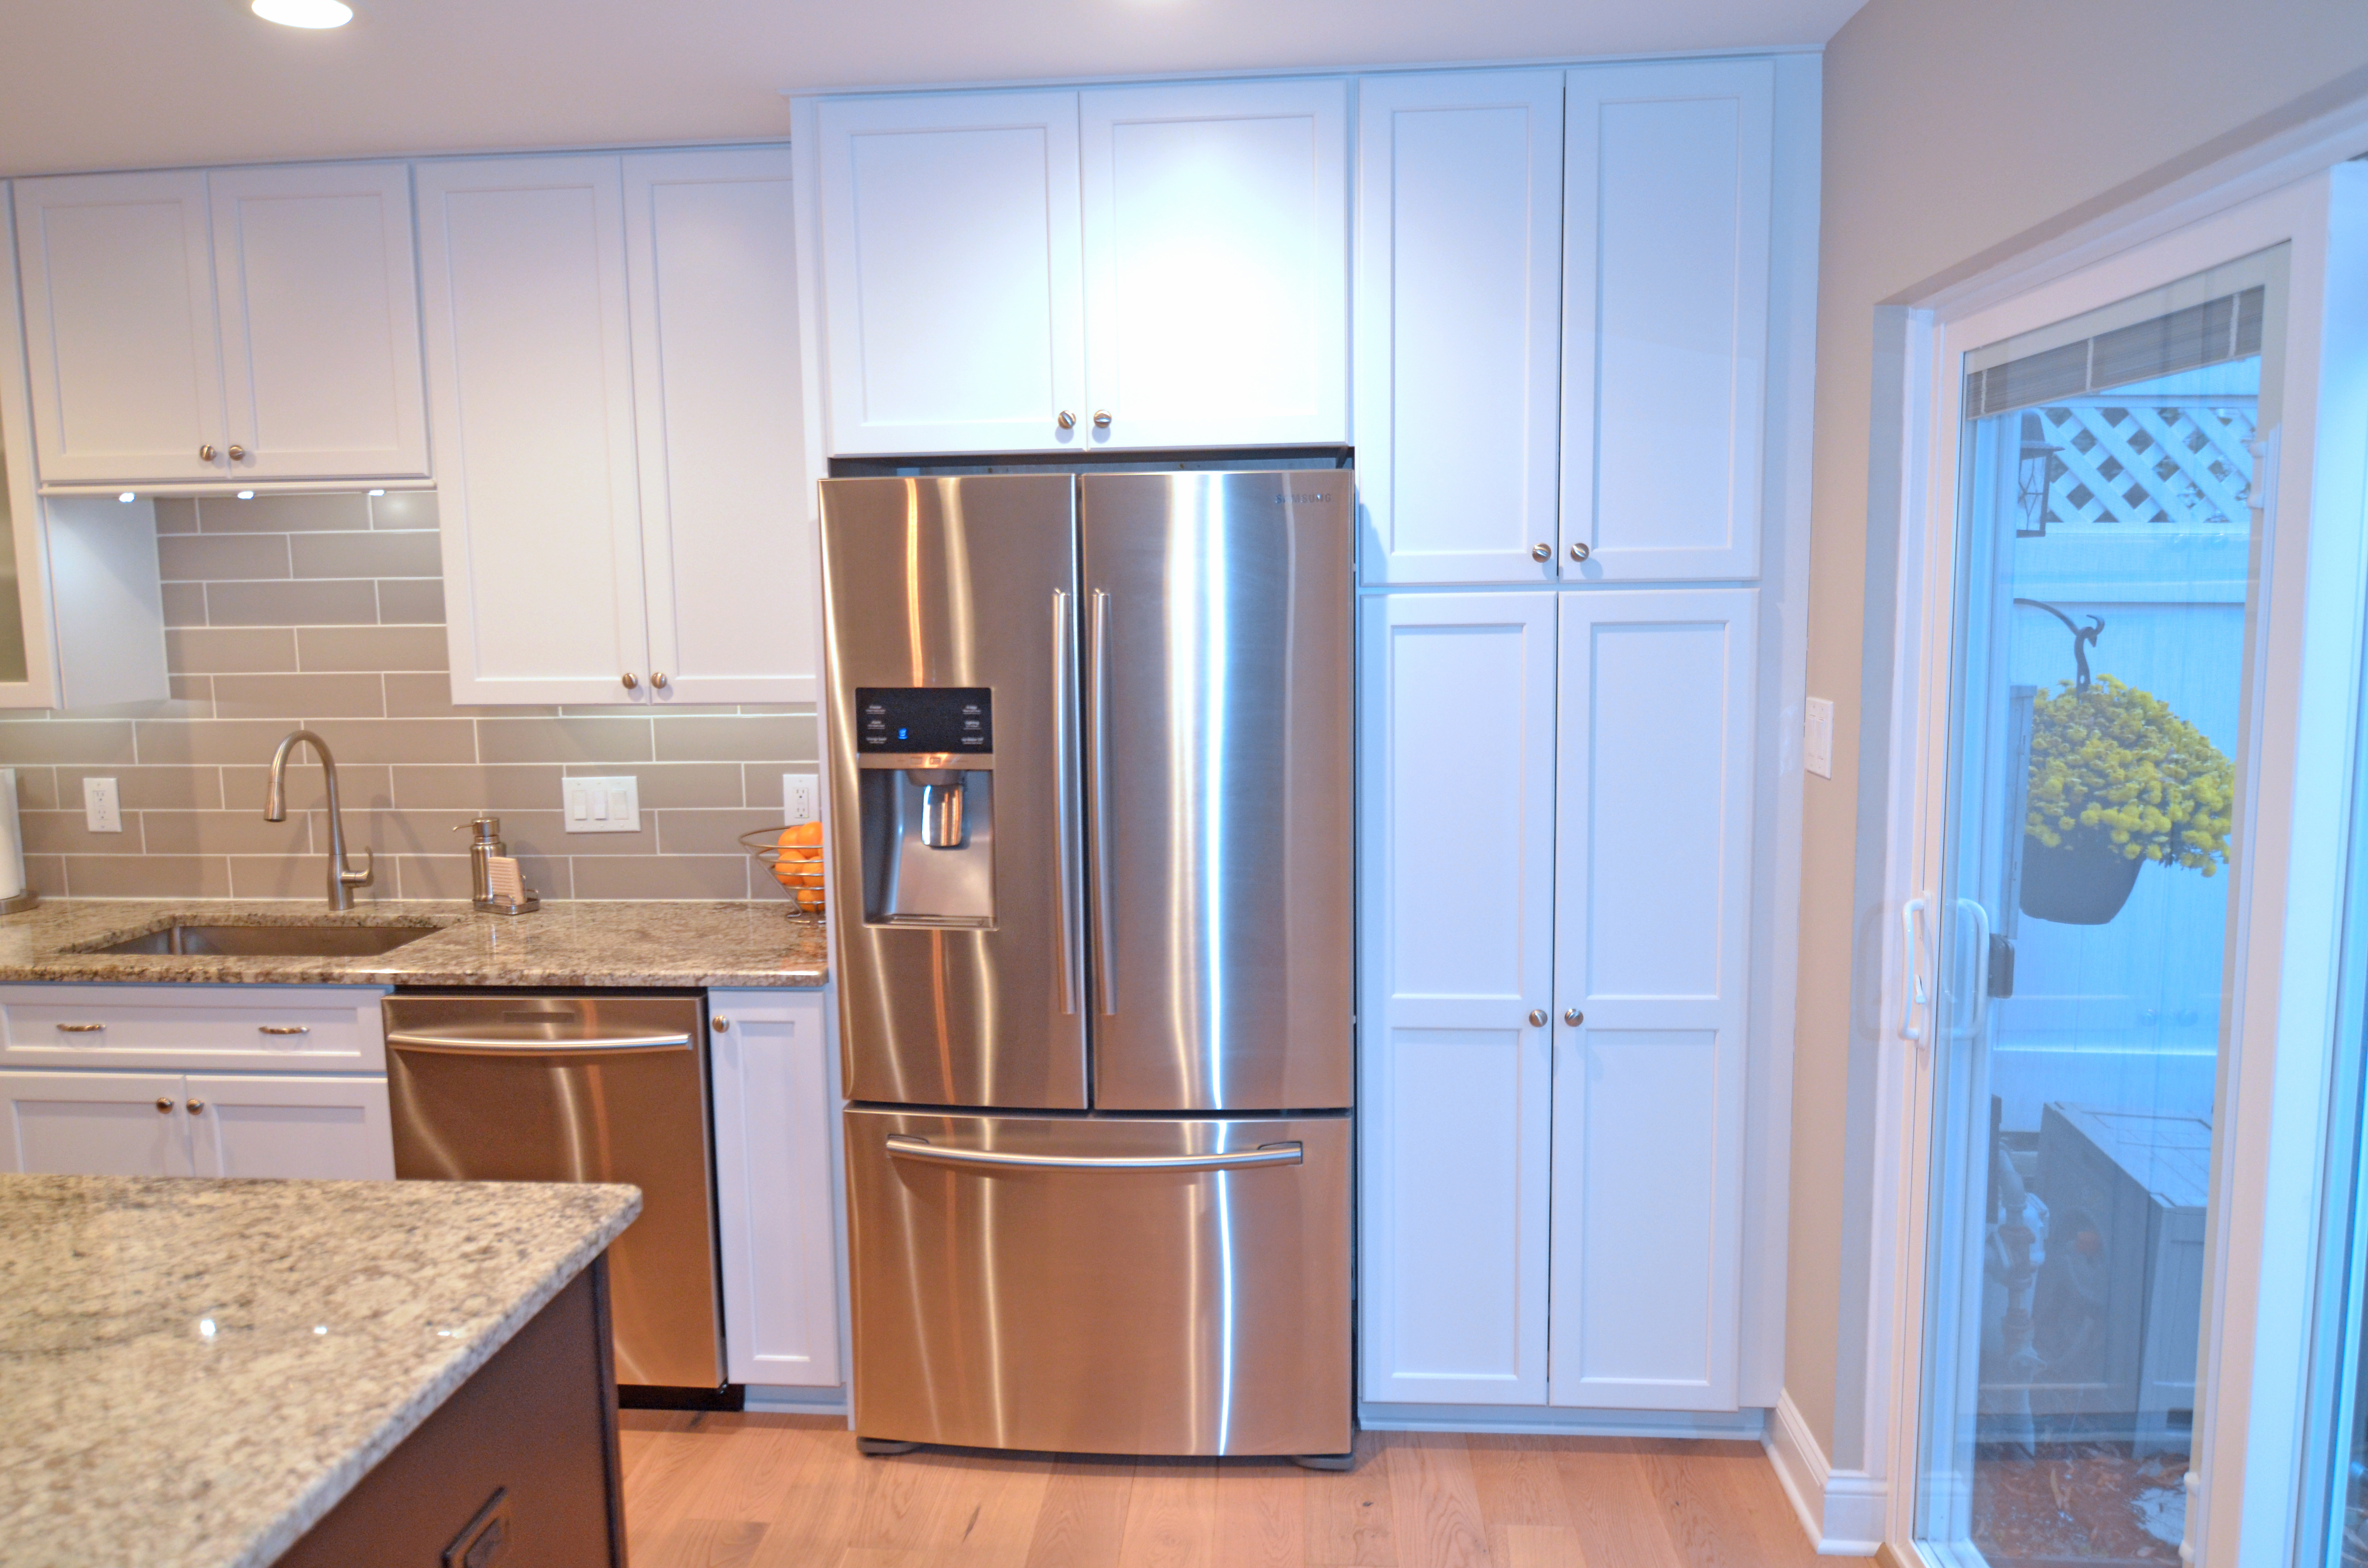 Pantry And Refrigerator Cabinet Next